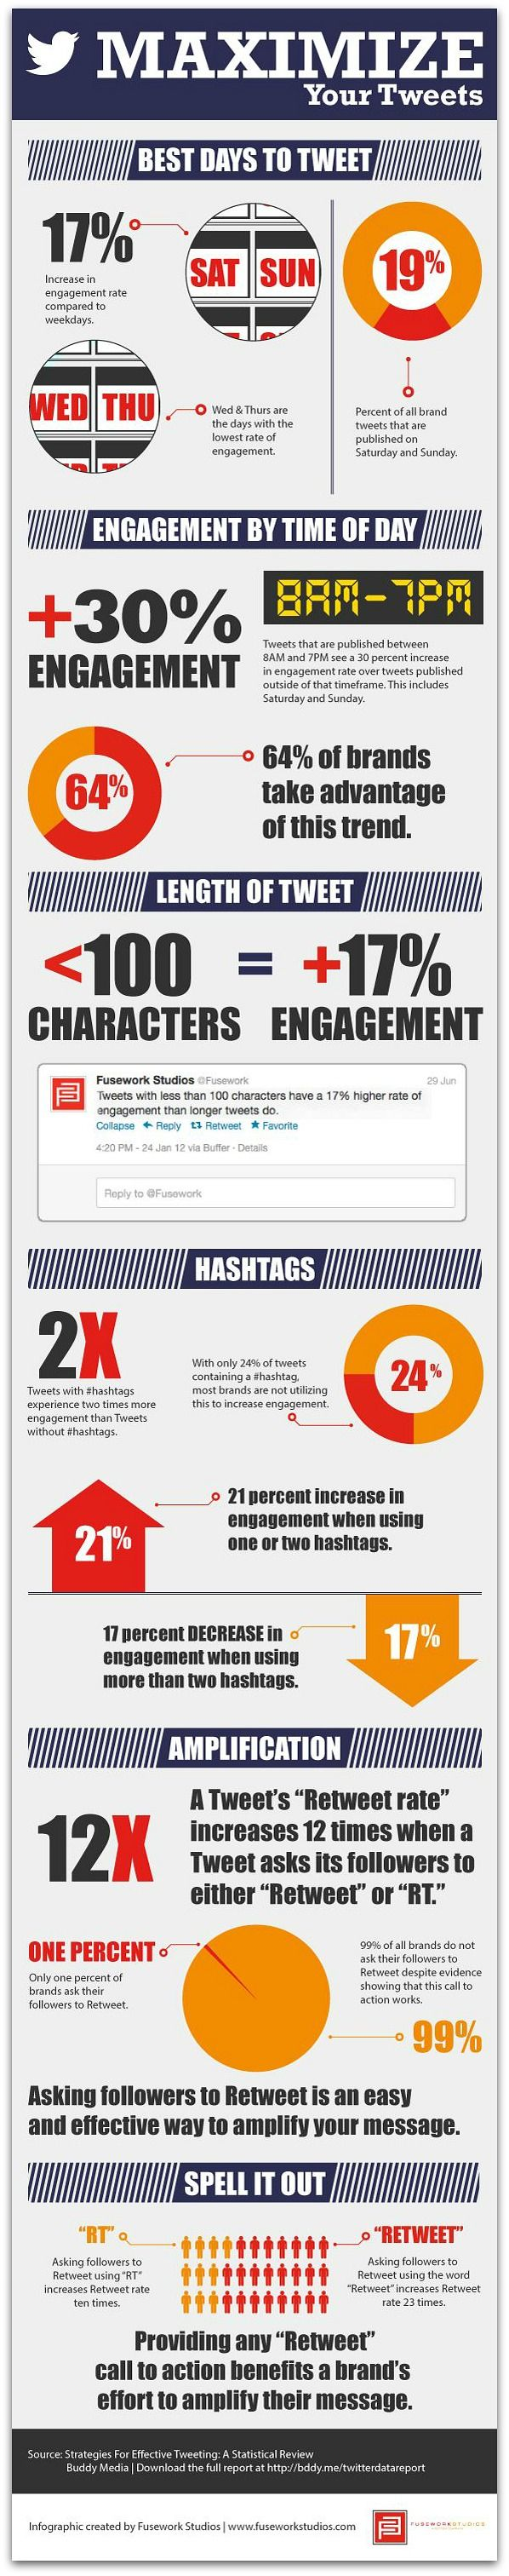 Infographic: How to jumpstart engagement on Twitter | Articles